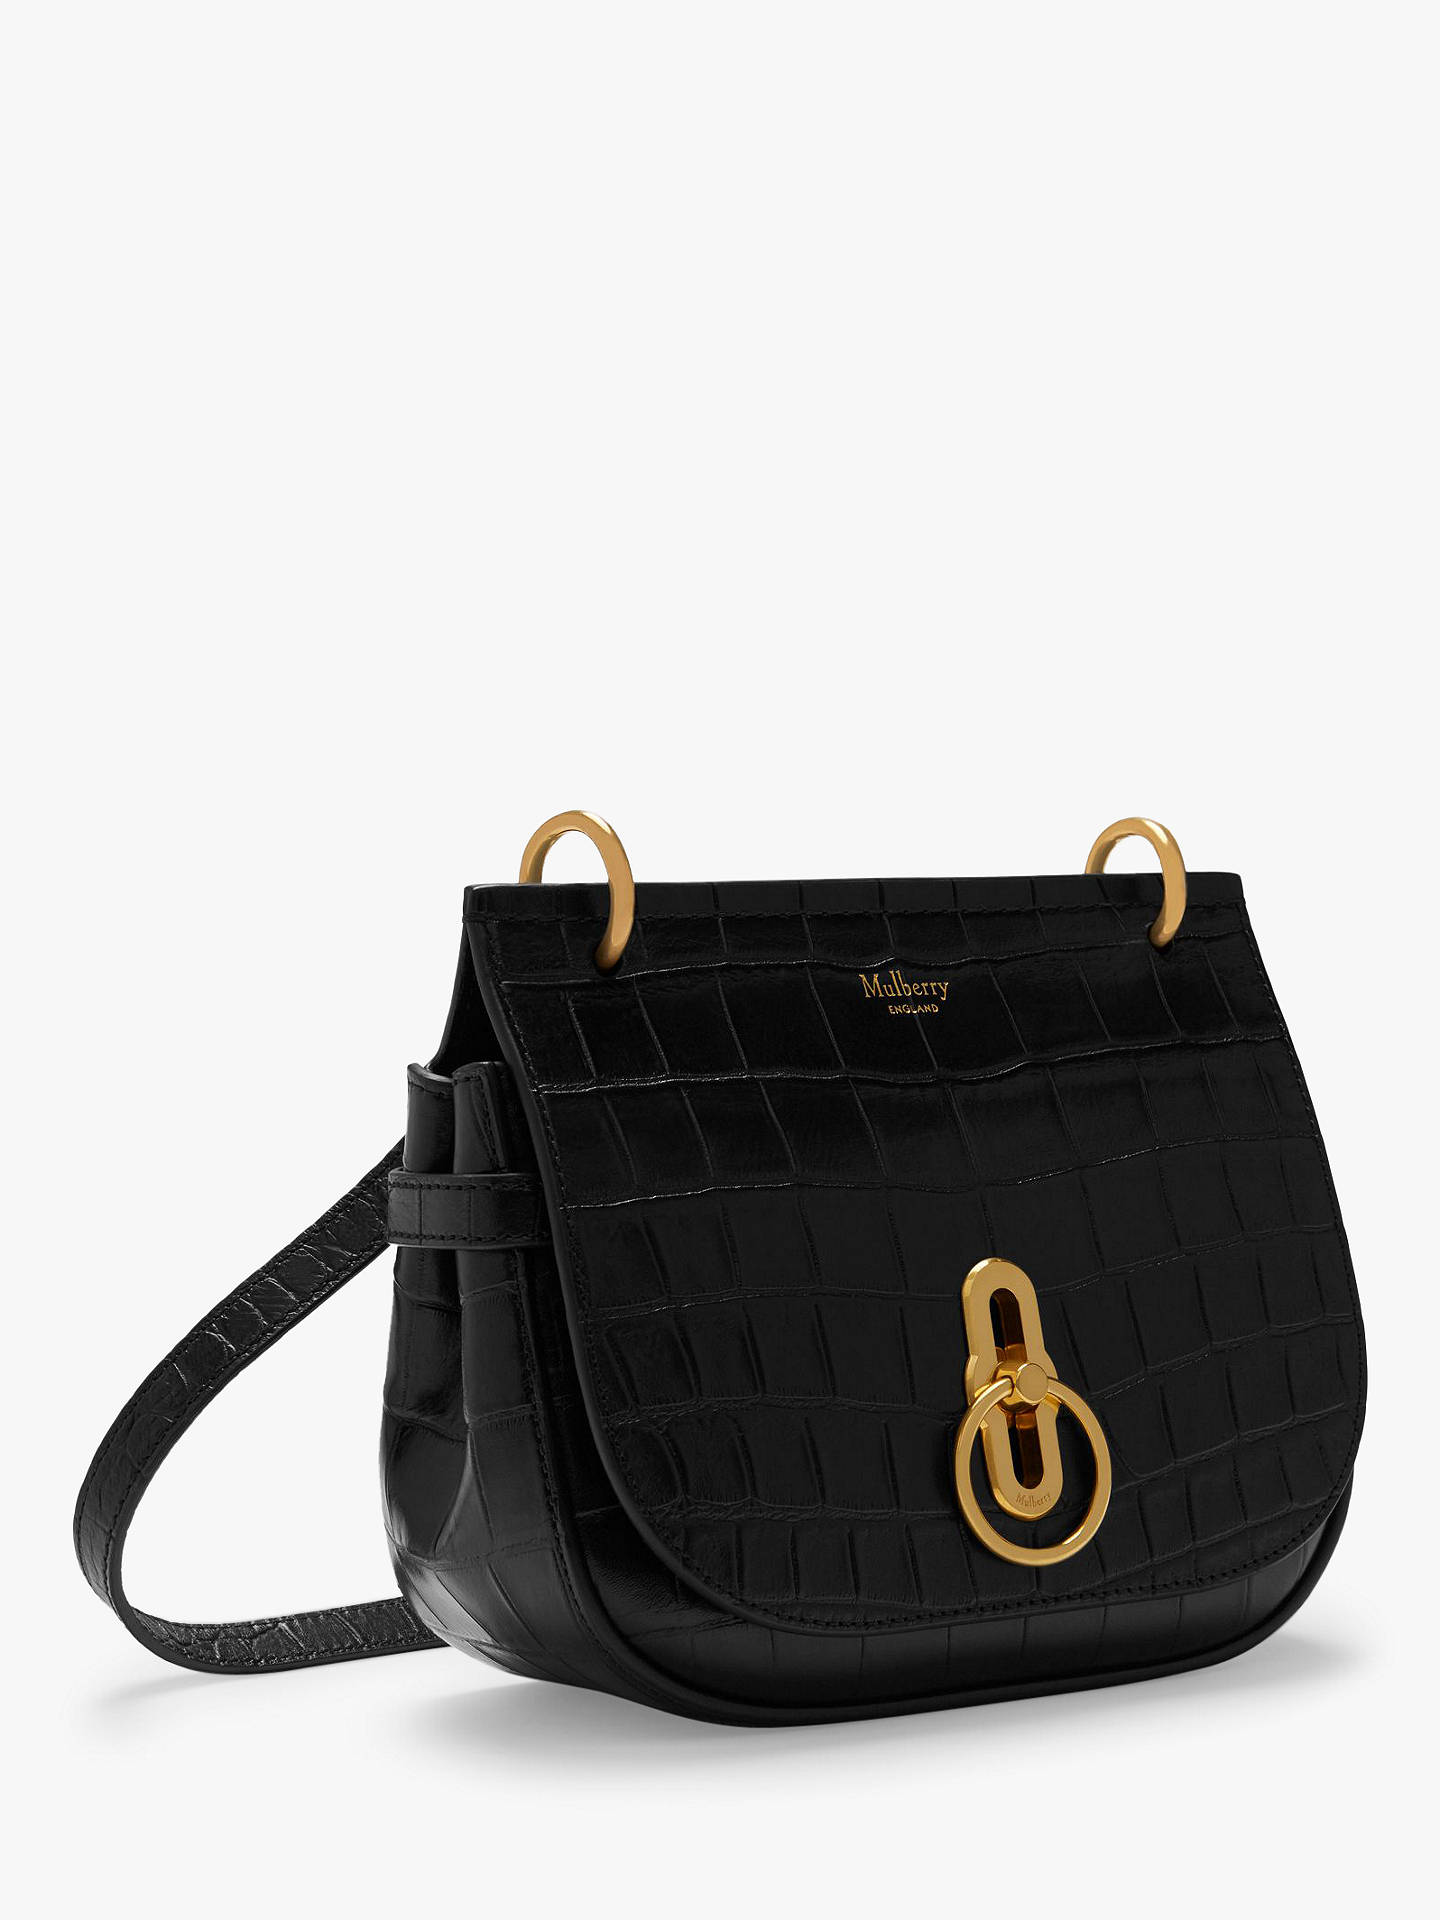 616e80cf652 ... Buy Mulberry Small Amberley Croc Embossed Leather Satchel, Black Online  at johnlewis.com ...